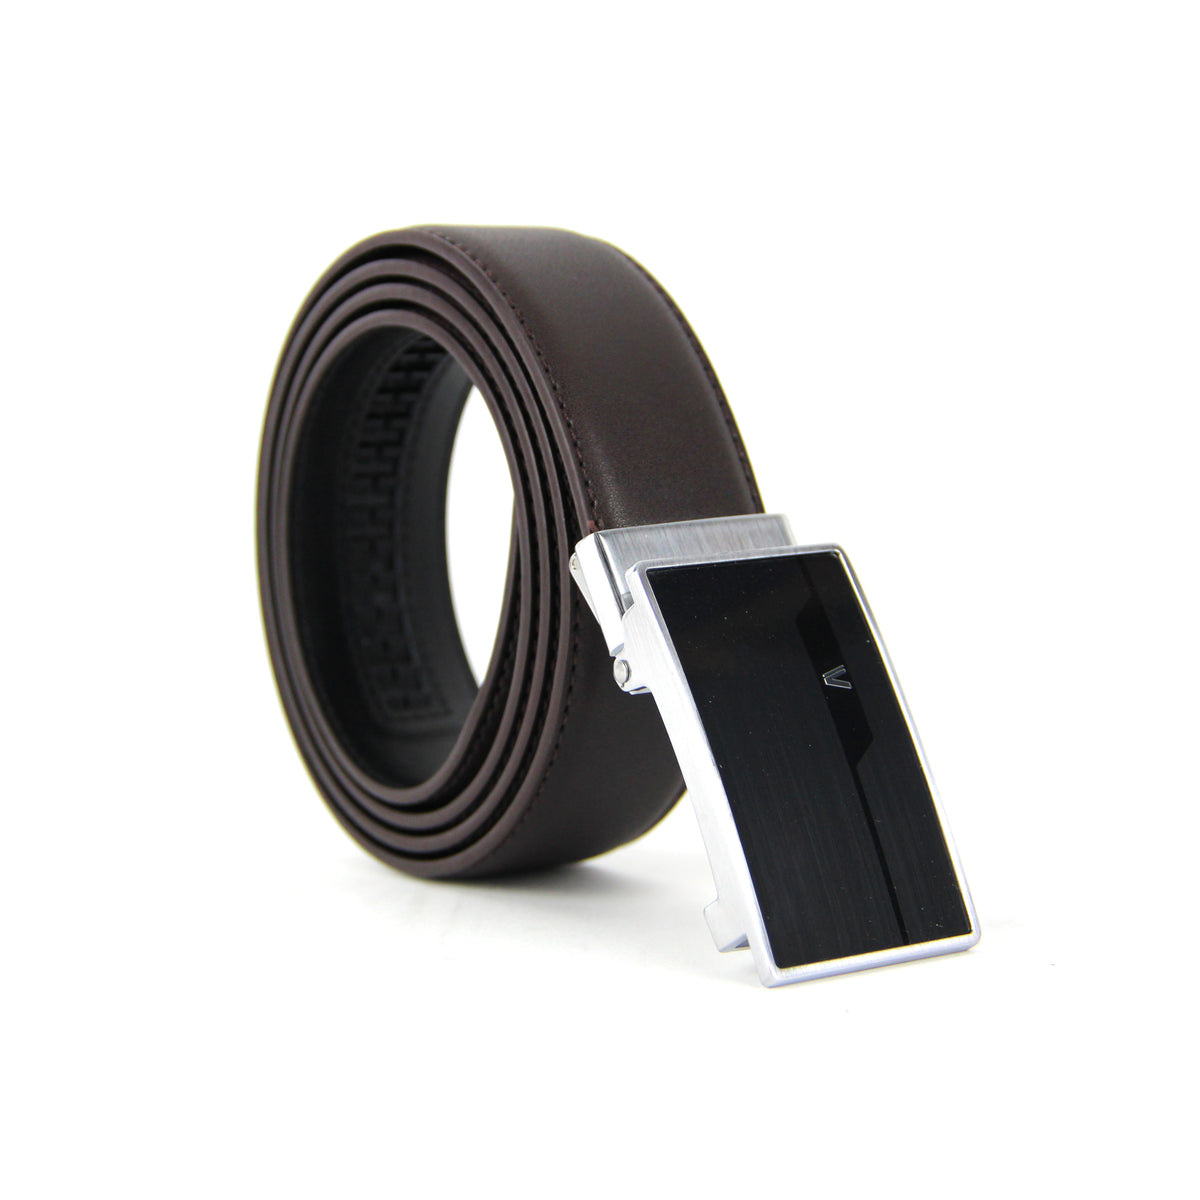 ALEF-NEW YORK BELT-ALEF AUTO LOCK BELTS 35MM